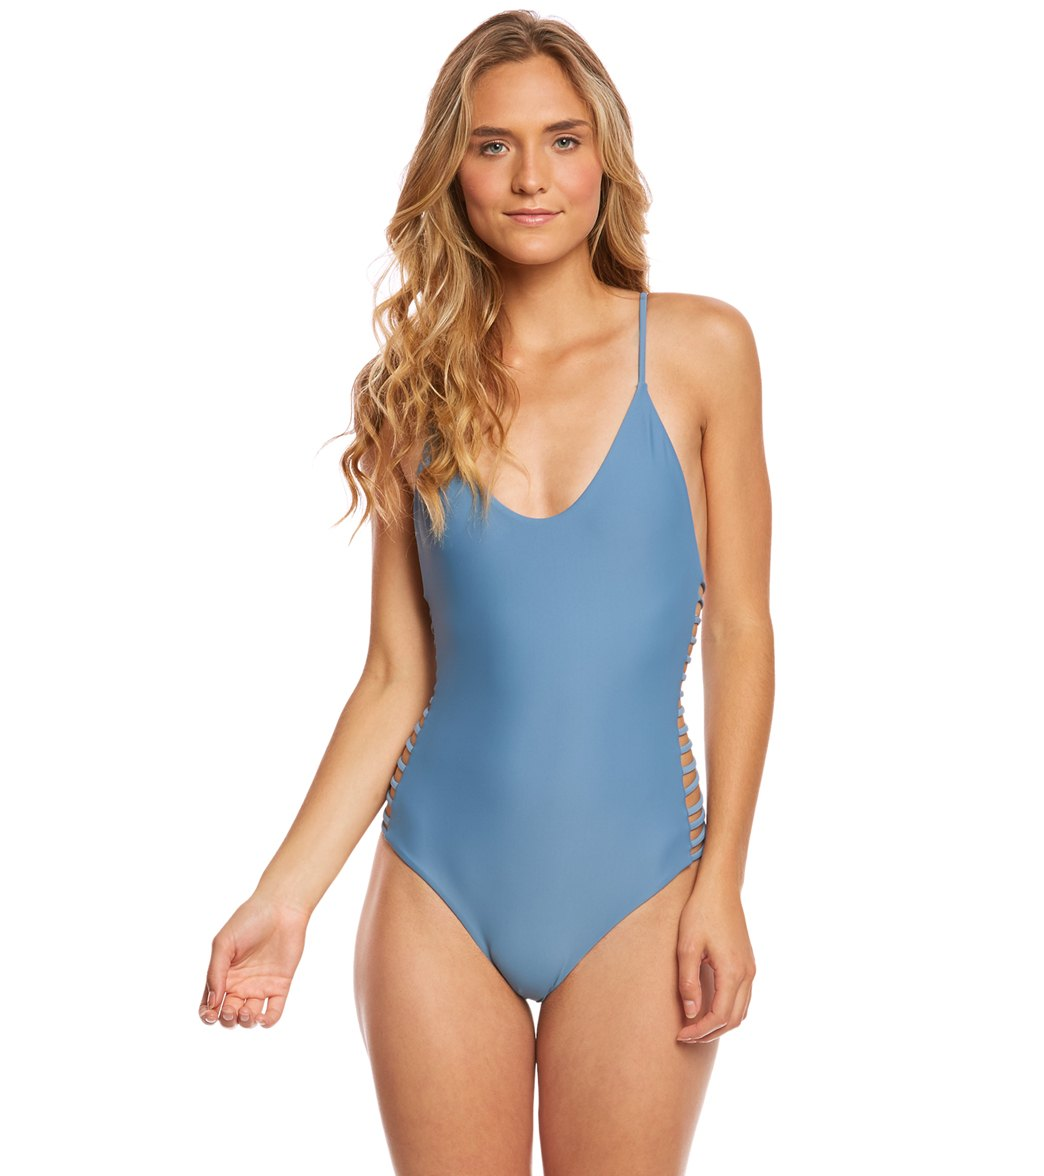 Stone Fox Swim Breeze Hermosa One Piece Swimsuit at SwimOutlet.com - Free  Shipping f82d86f64